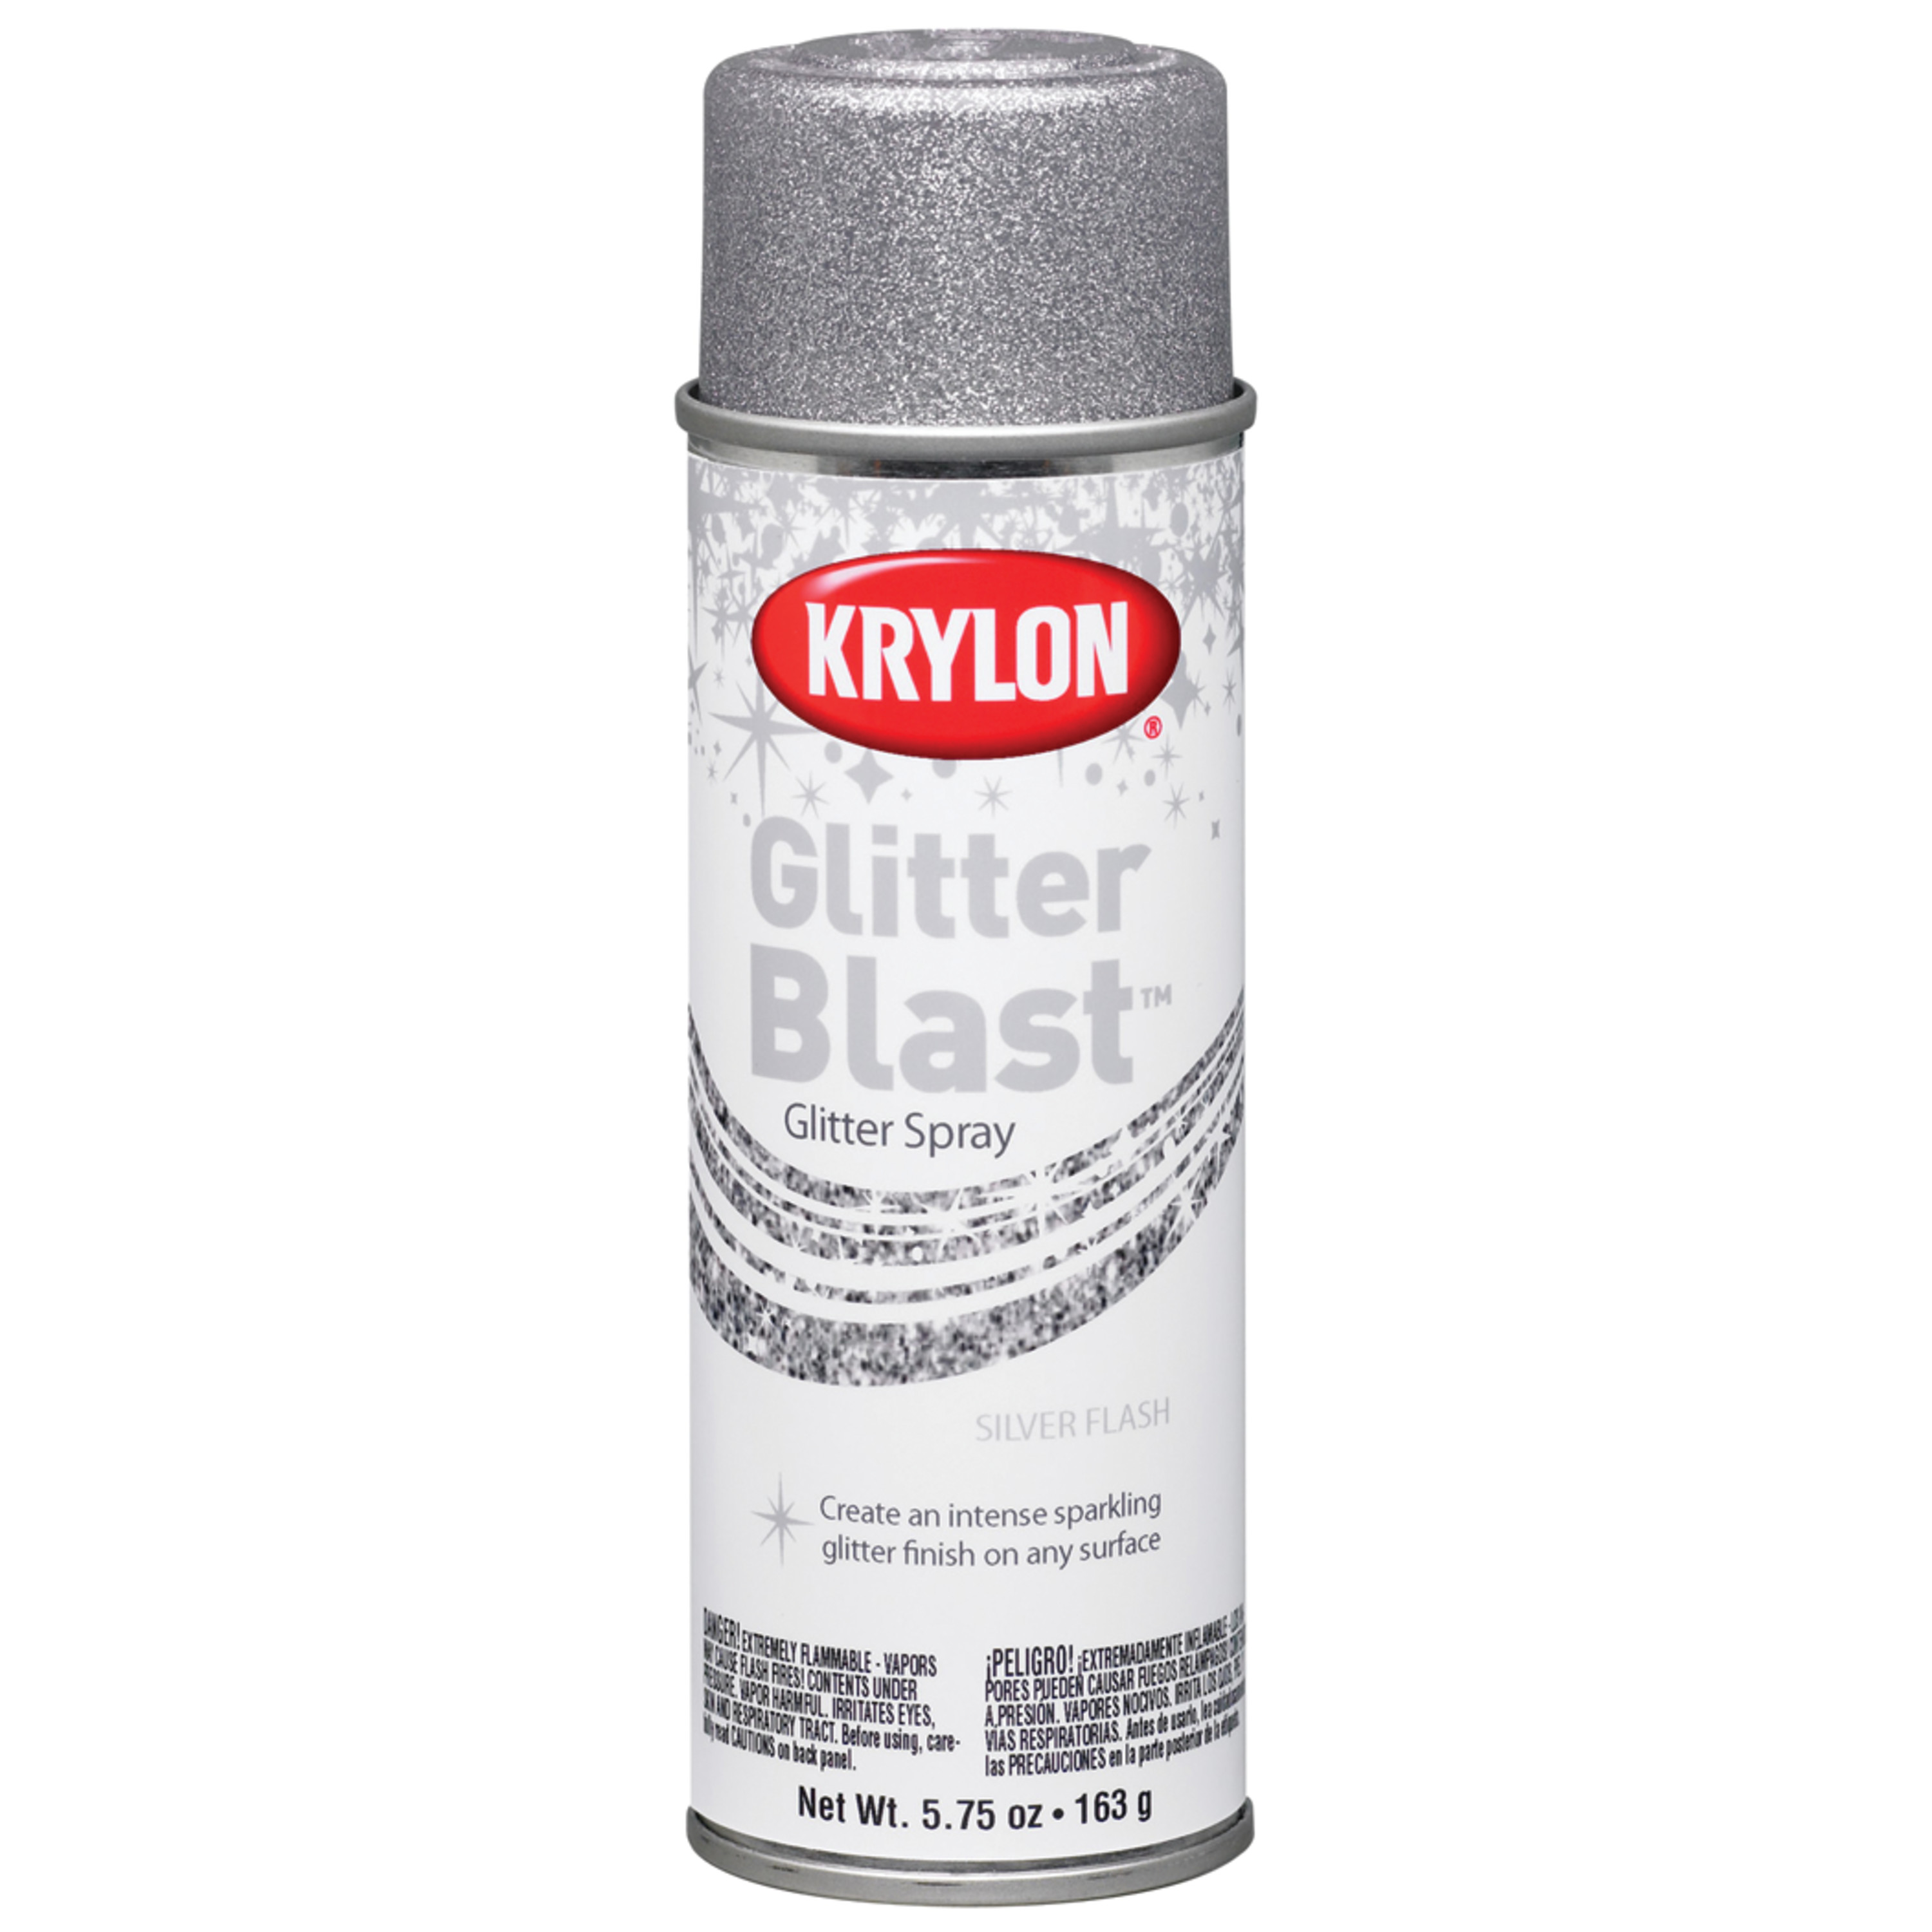 Krylon Glitter Blast Spray Paint, 5.7 oz., Silver Flash